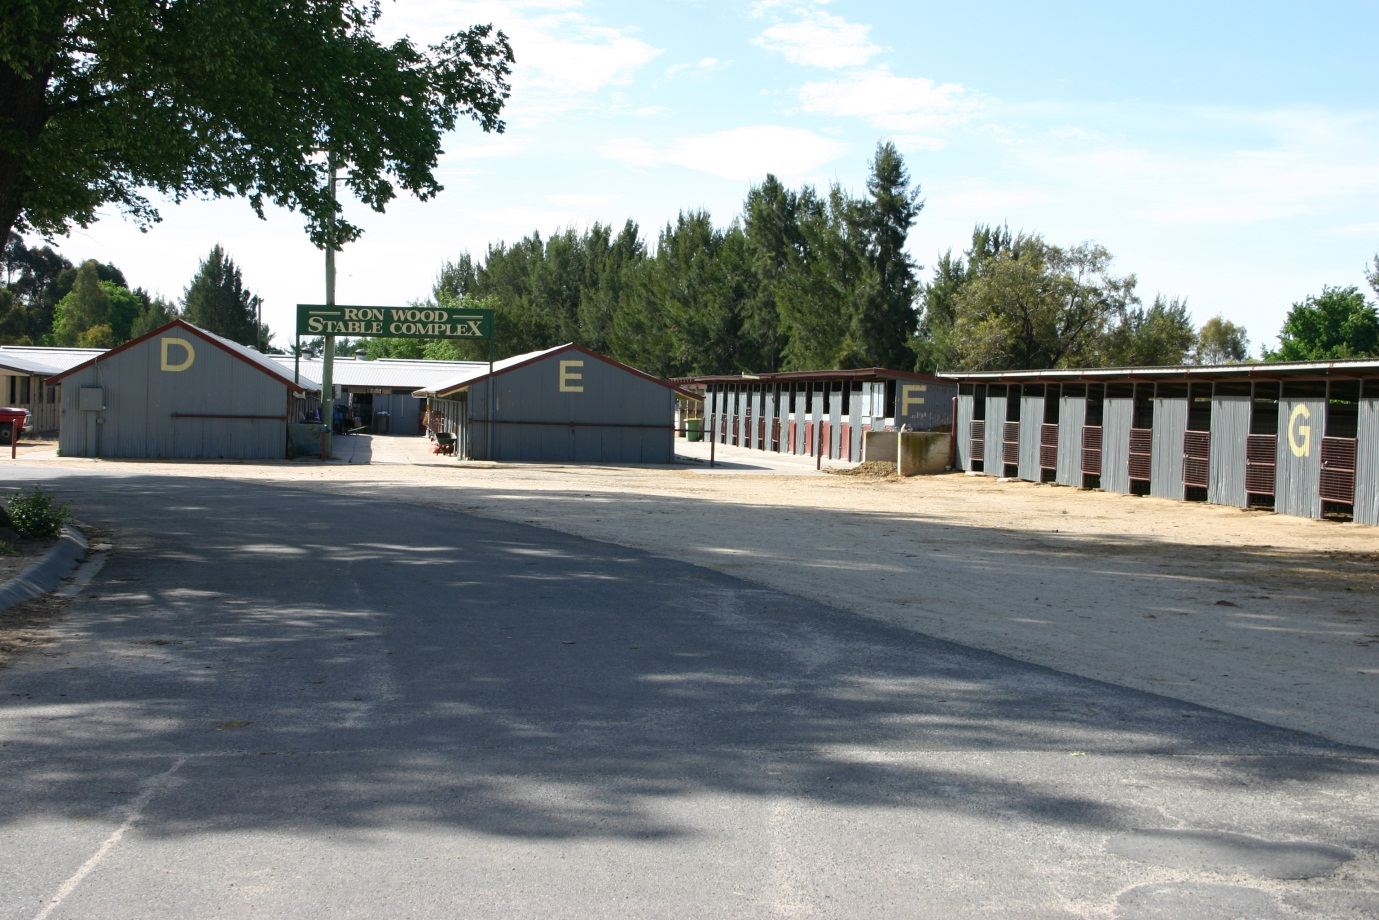 Bathurst Showground stables